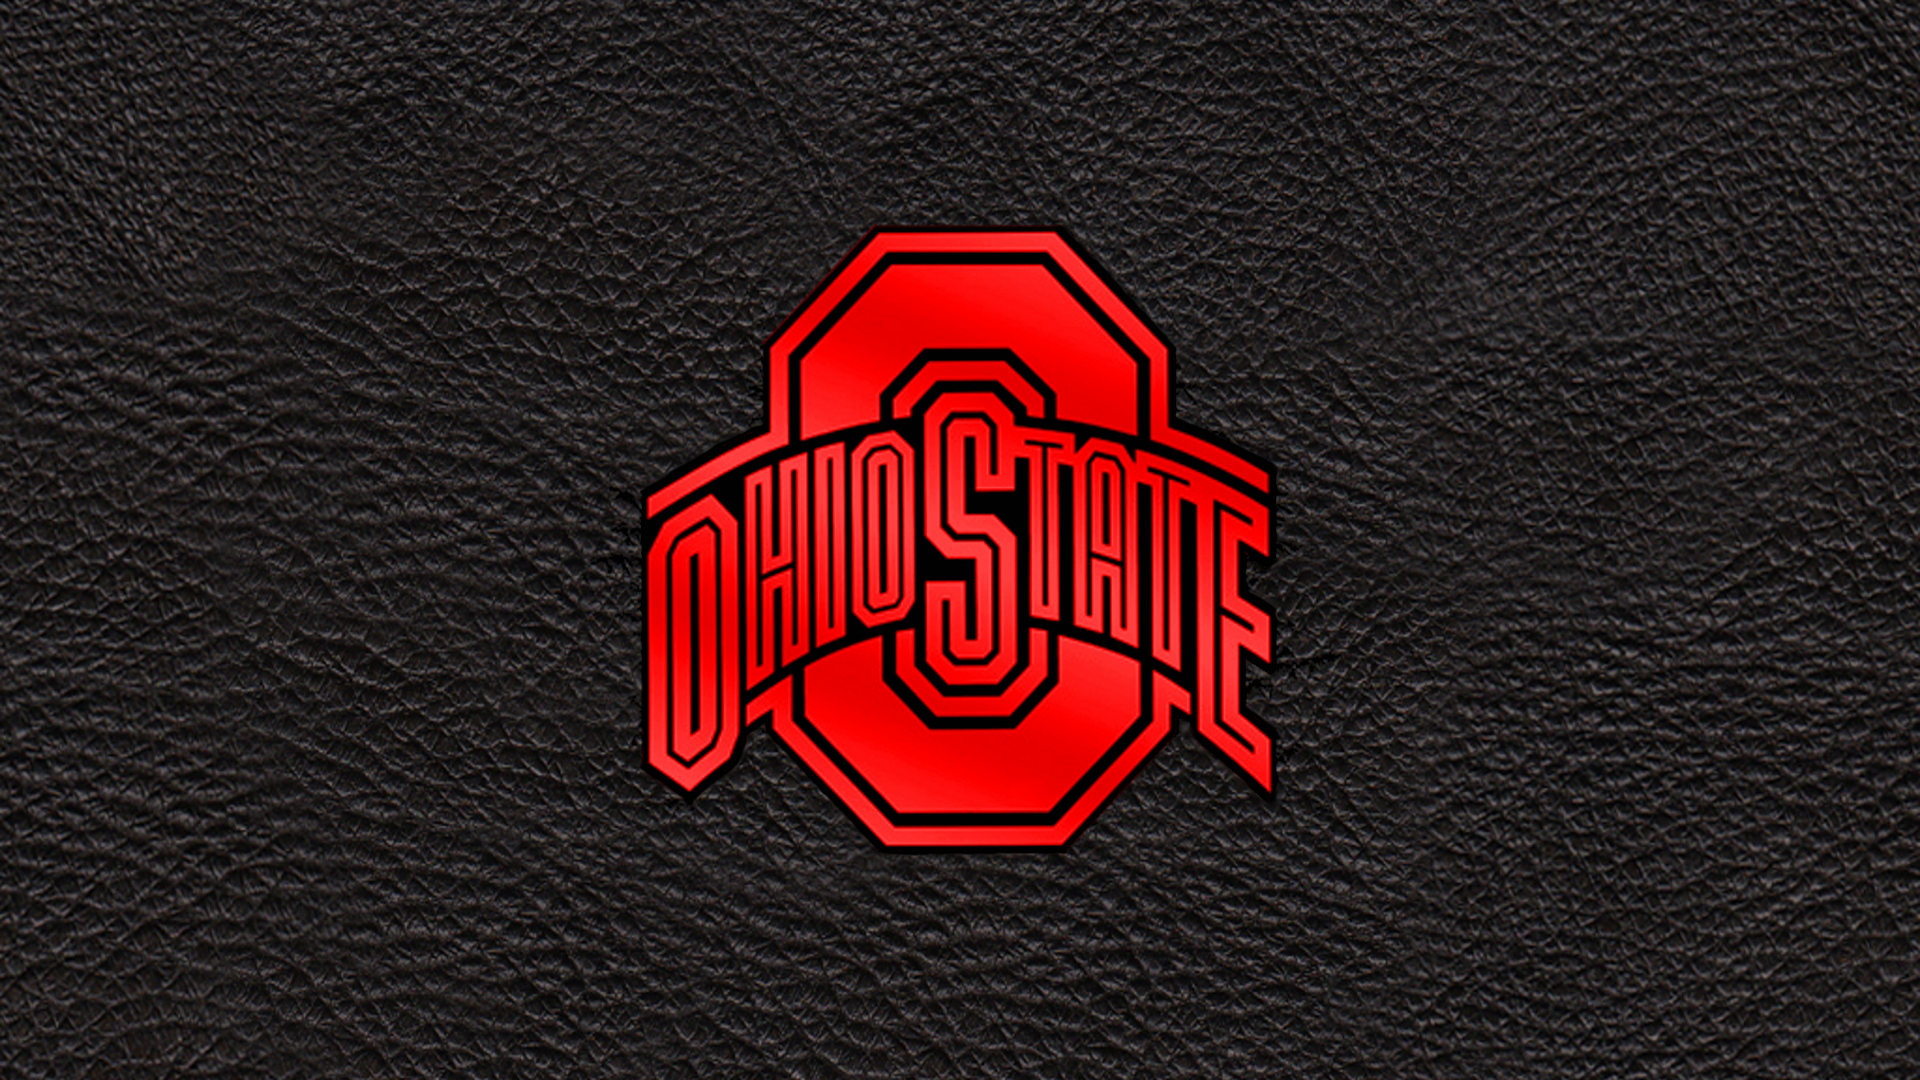 wallpaperwikiosuwallpaperdownloadohiostatefootball